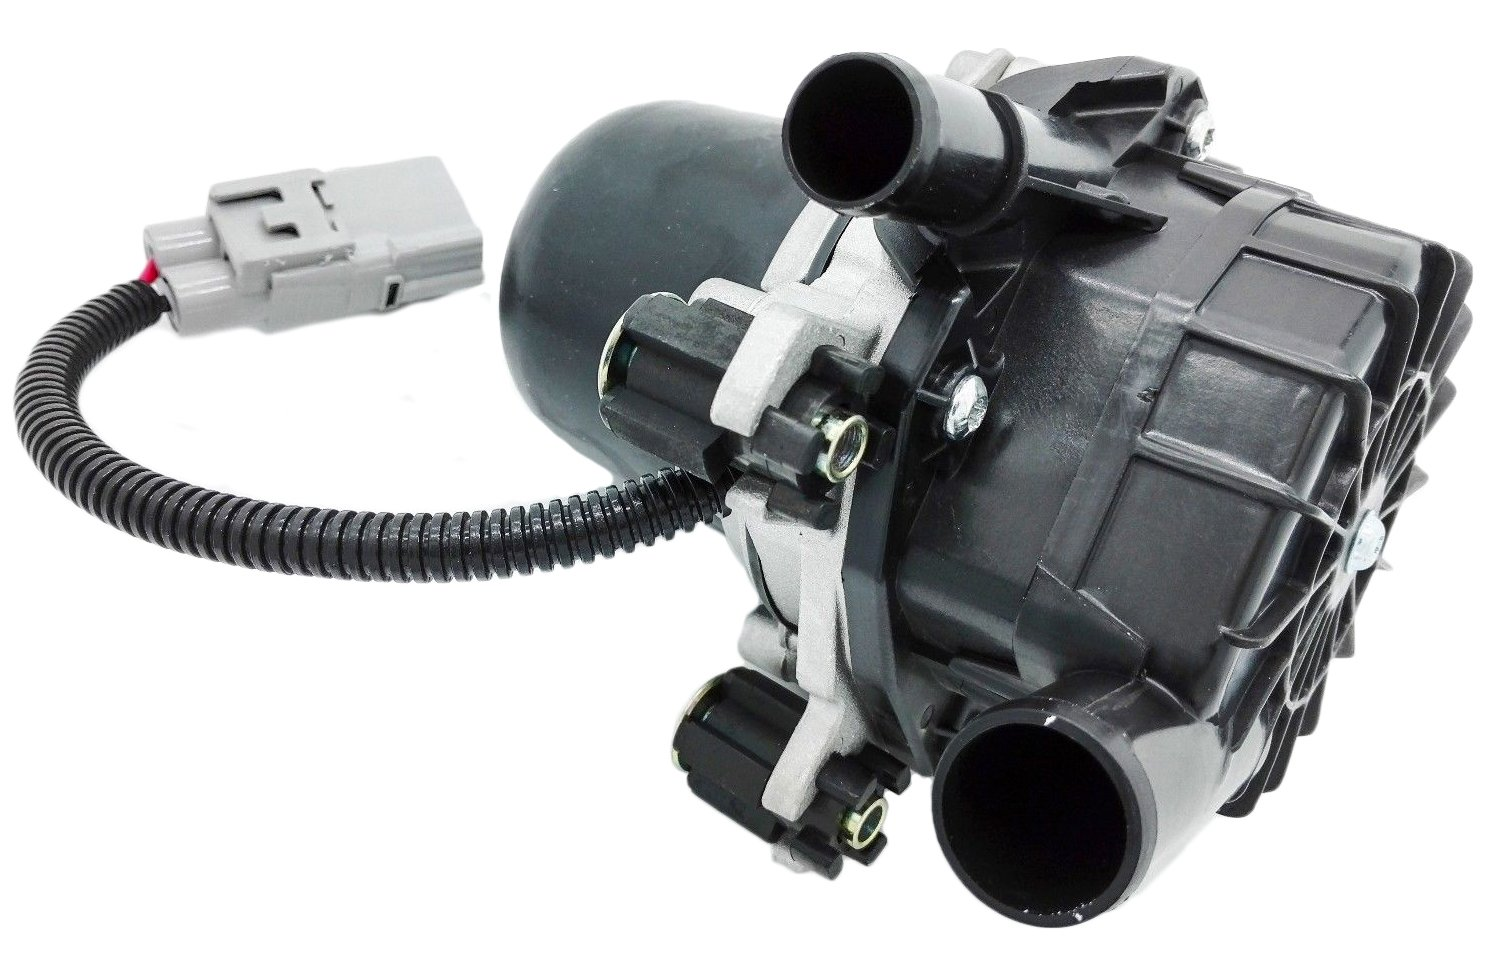 OKAY MOTOR Secondary Air Pump for 04-07 Toyota Sequoia Tundra 4Runner Lexus GX470 4.7L V8 by OKAY MOTOR